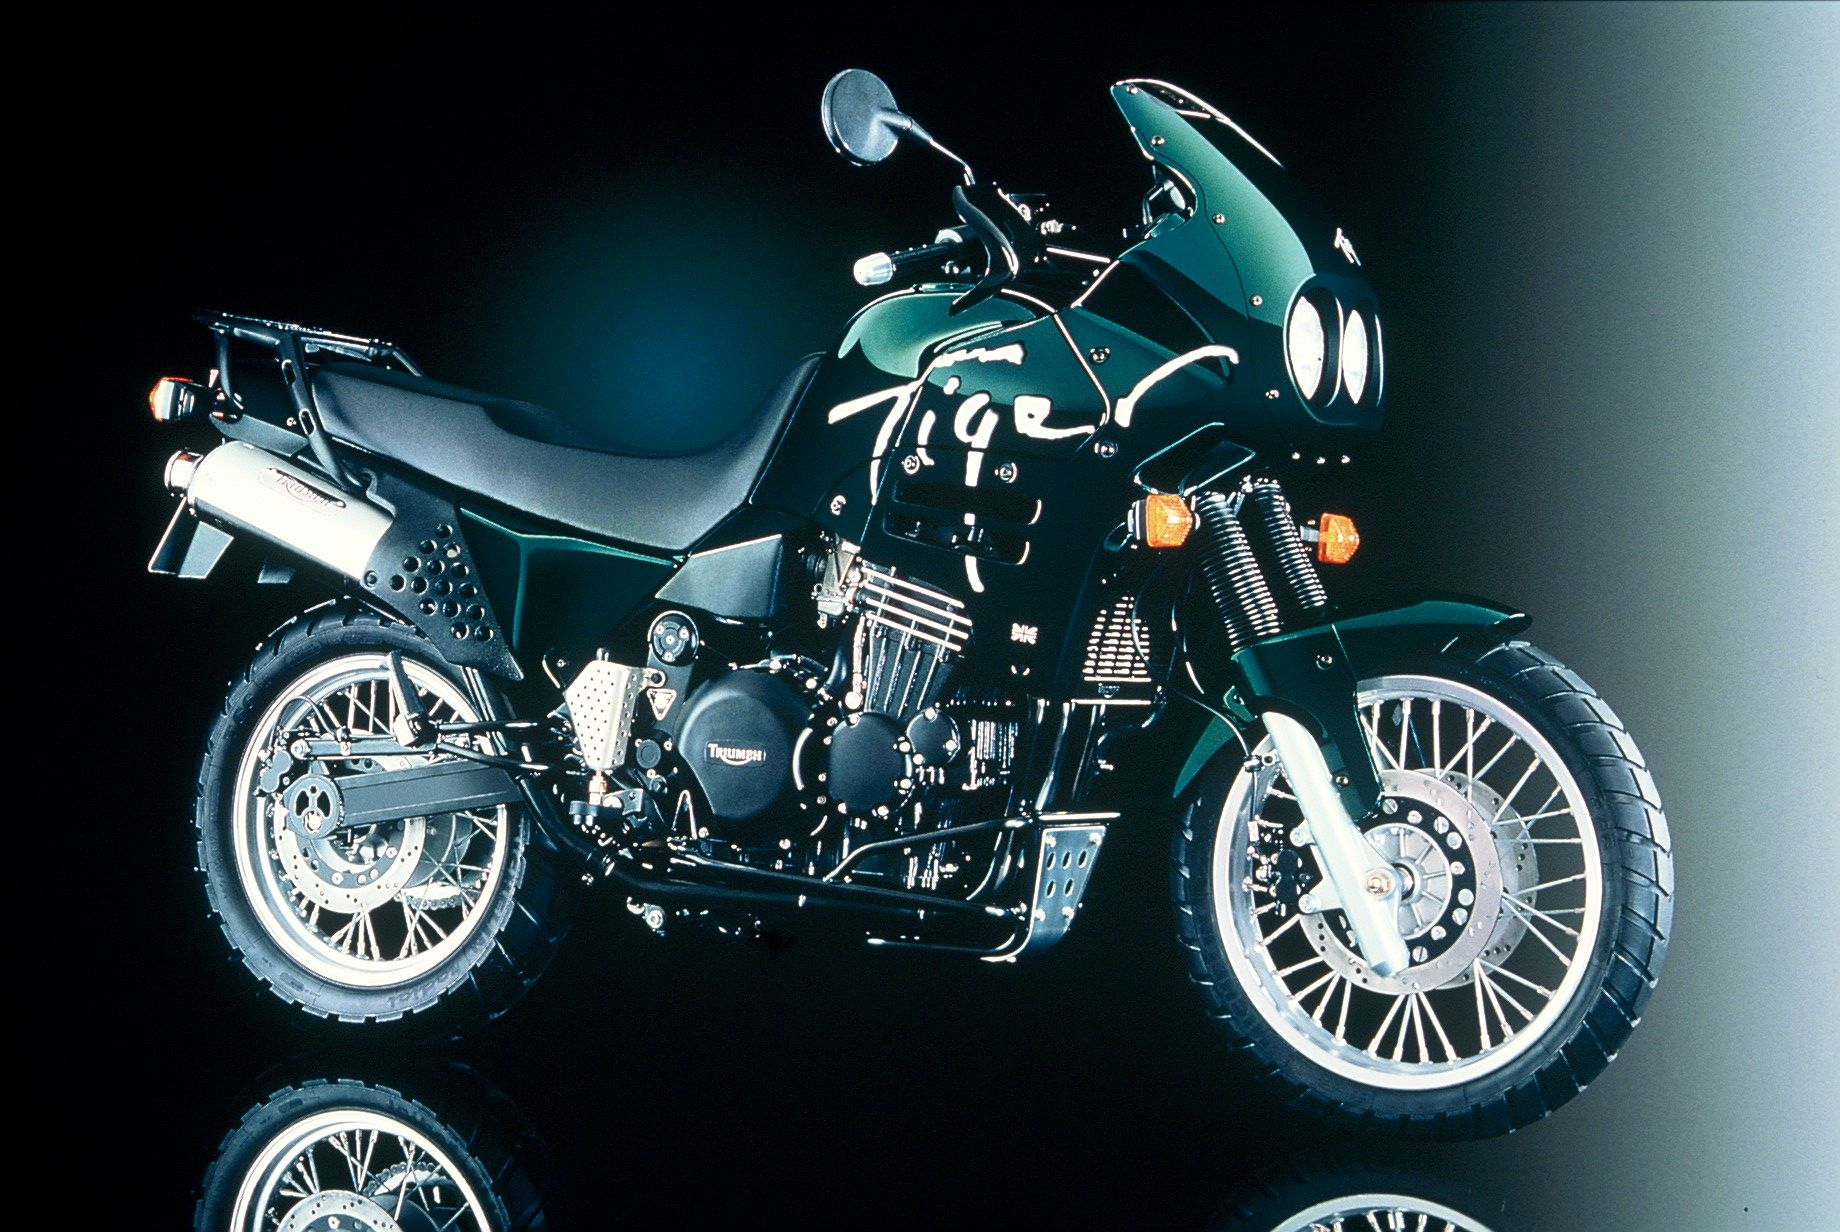 Triumph Tiger 900 1999 wallpapers #159907